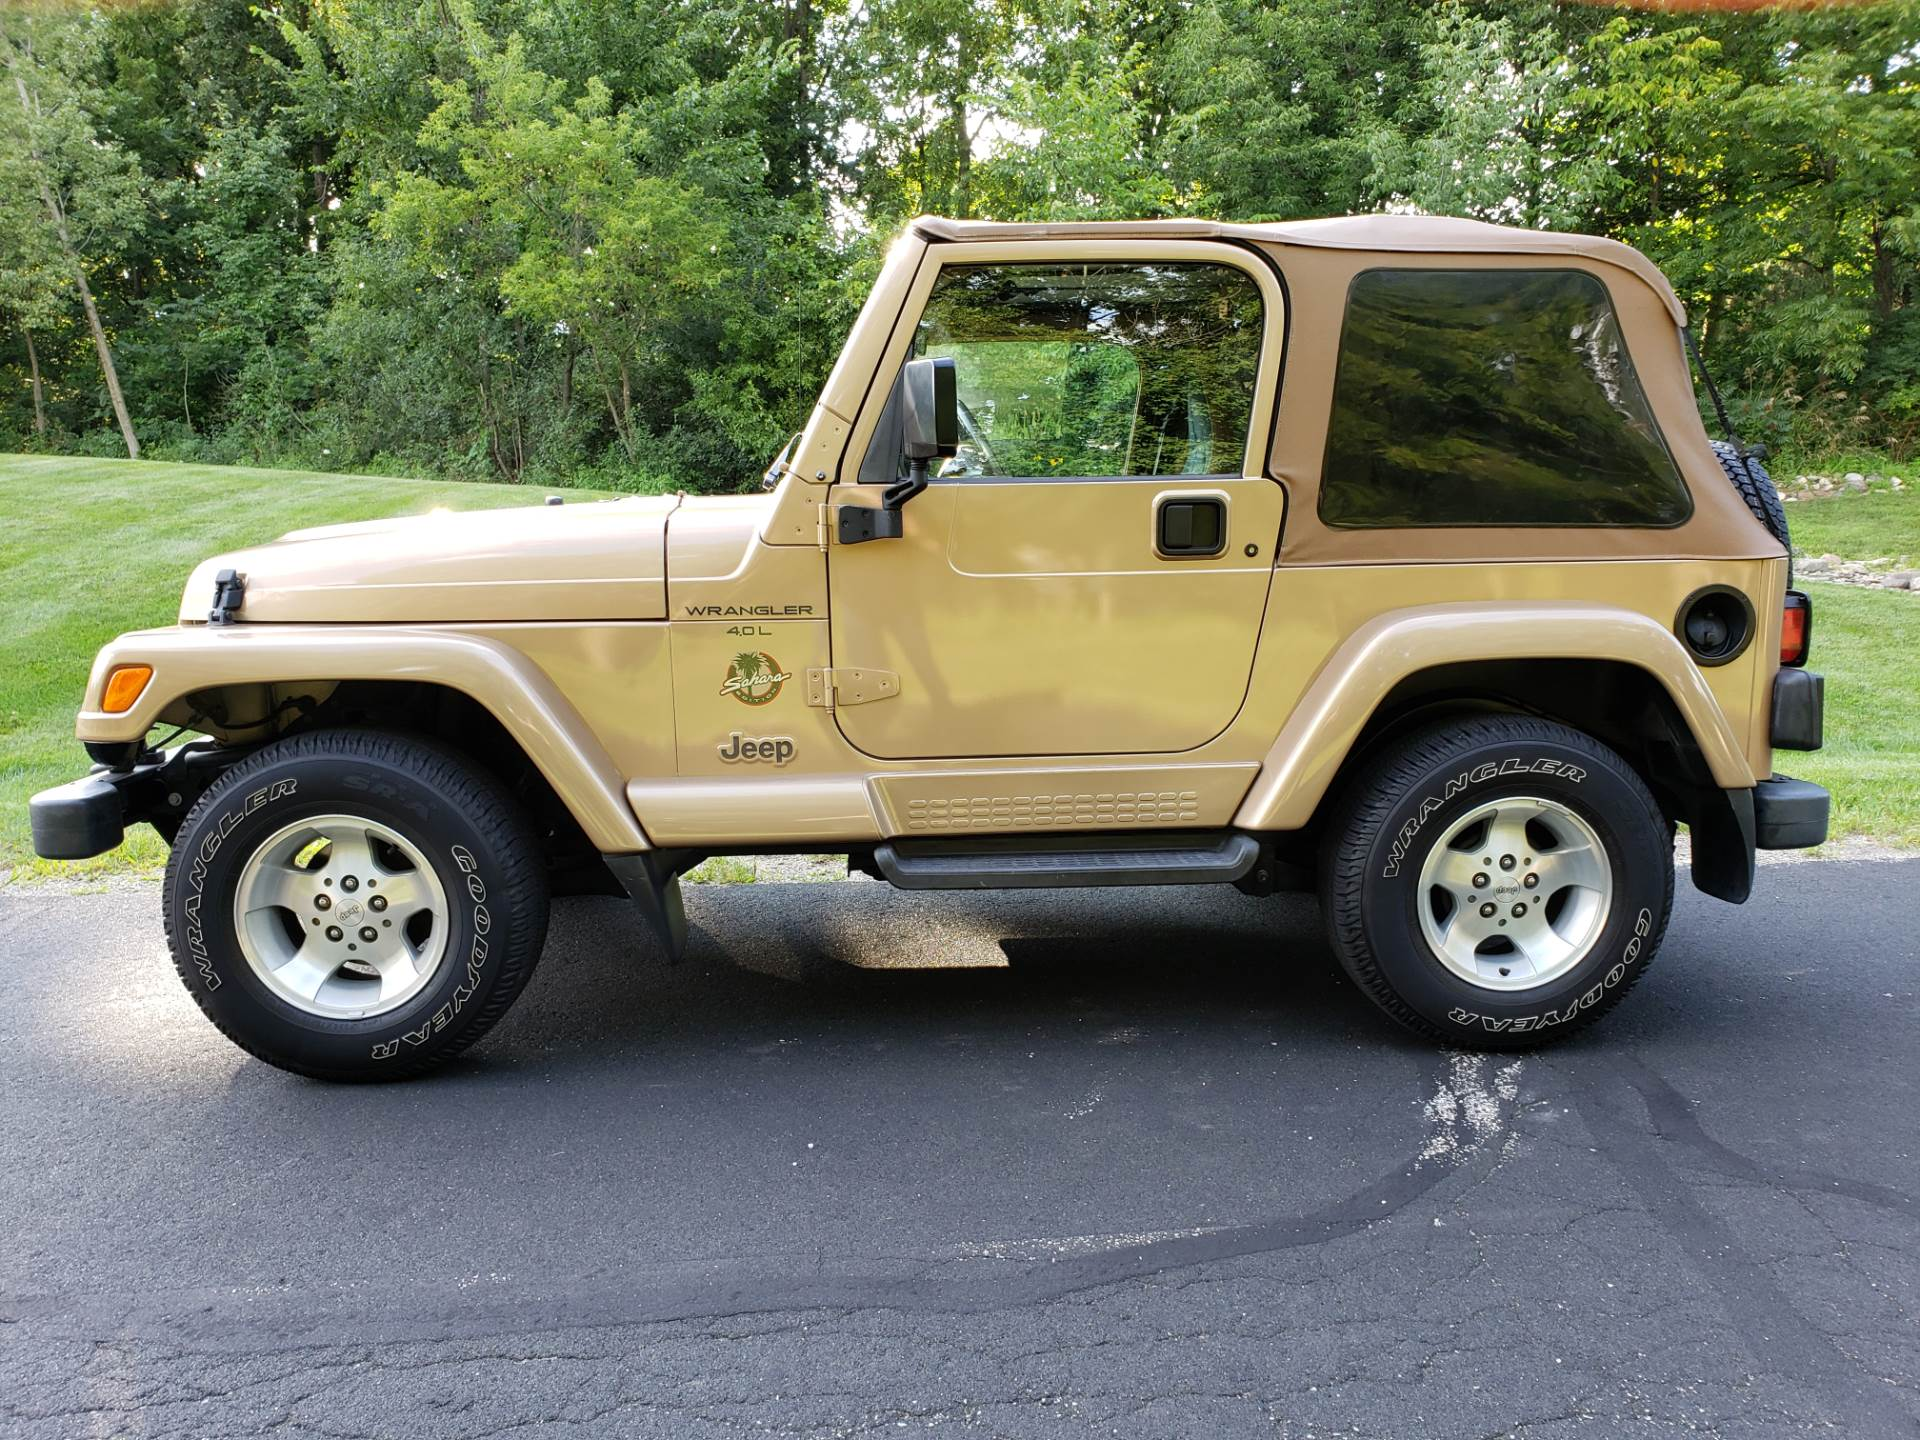 1999 Jeep Wrangler Sahara 2dr 4WD SUV in Big Bend, Wisconsin - Photo 41